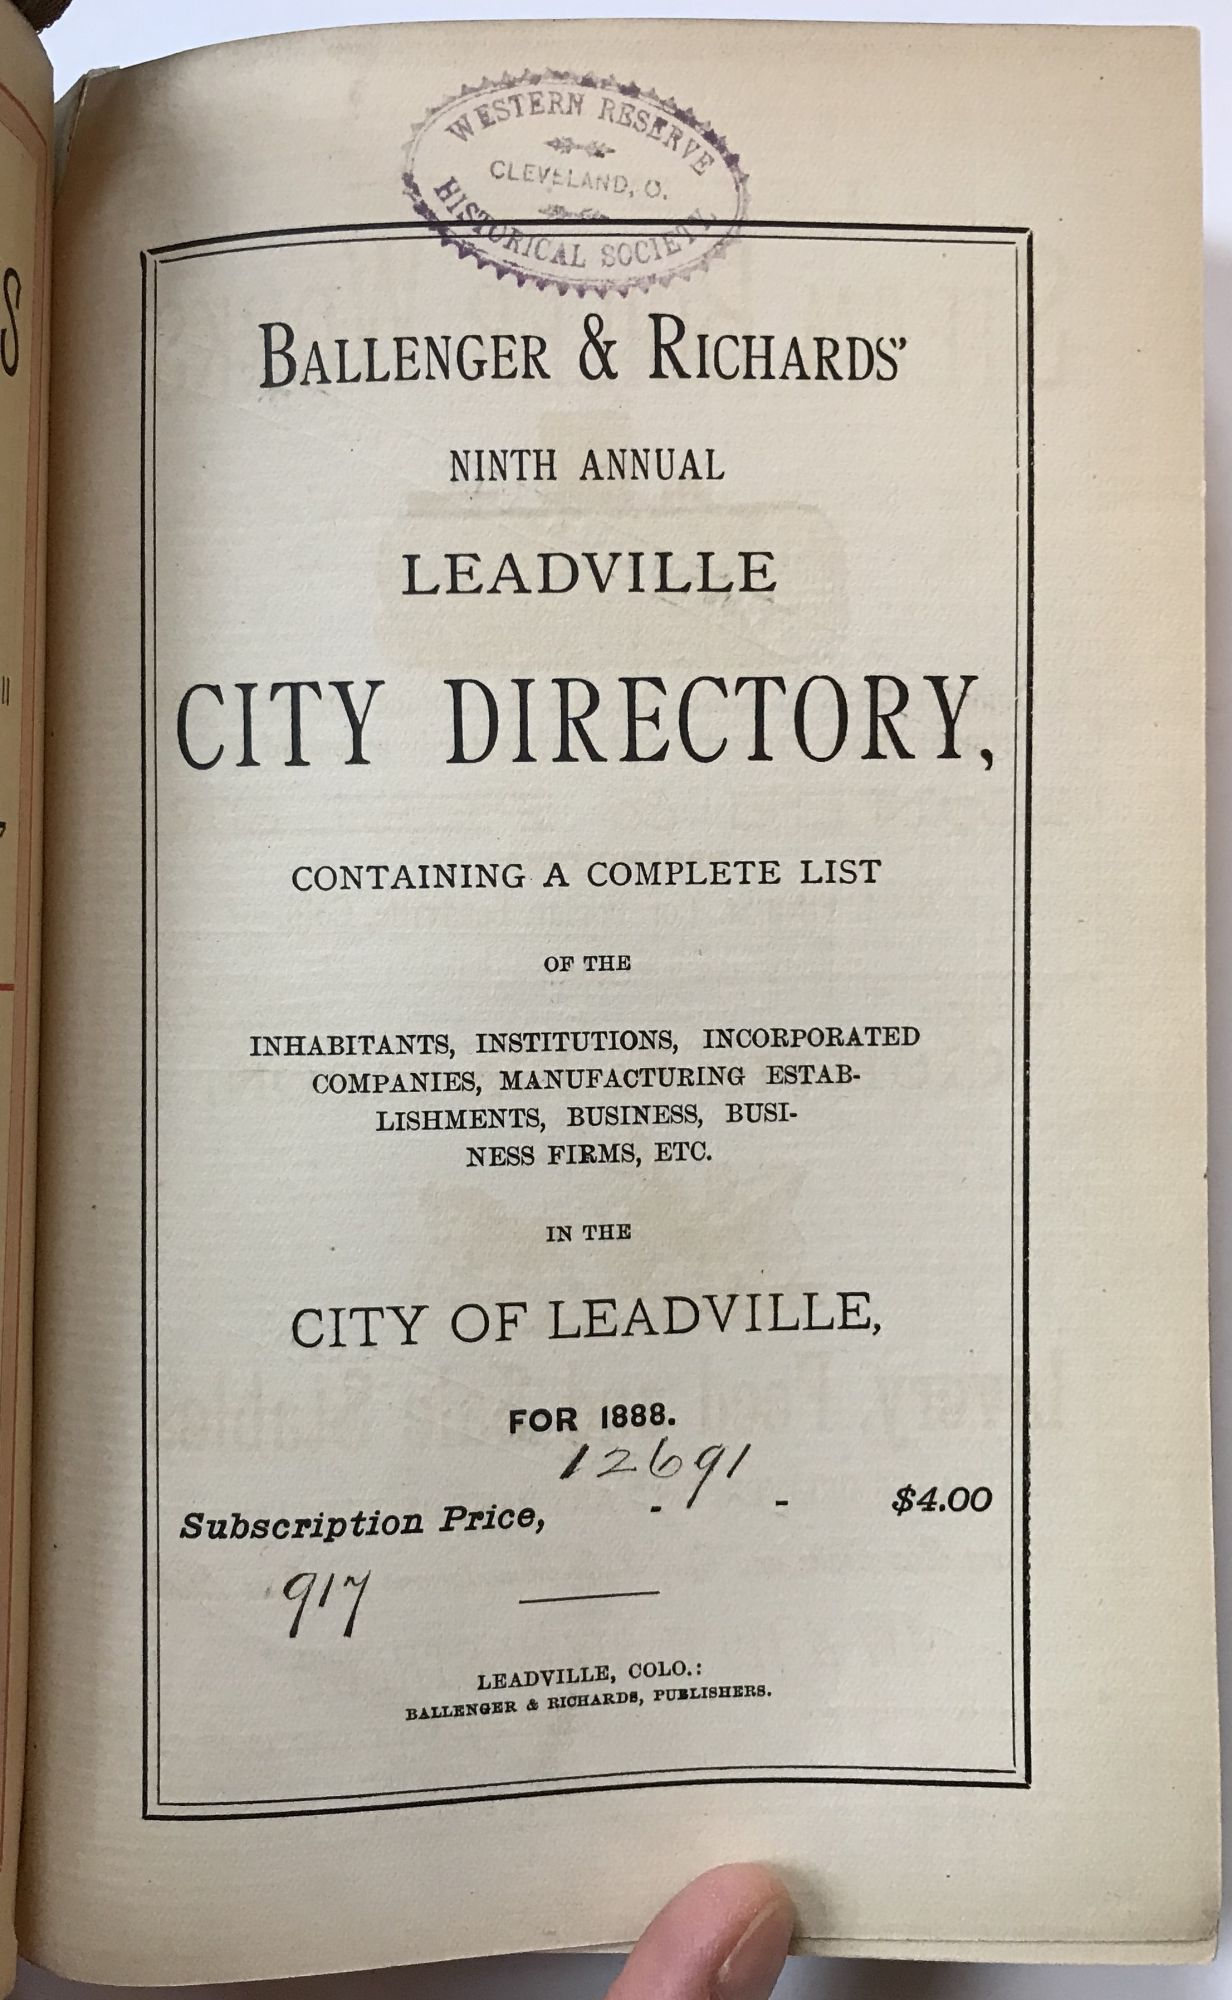 Ballenger & Richards' Ninth Annual Leadville City Directory, Containing a  Complete List of the Inhabitants, Institutions, Incorporated Companies,